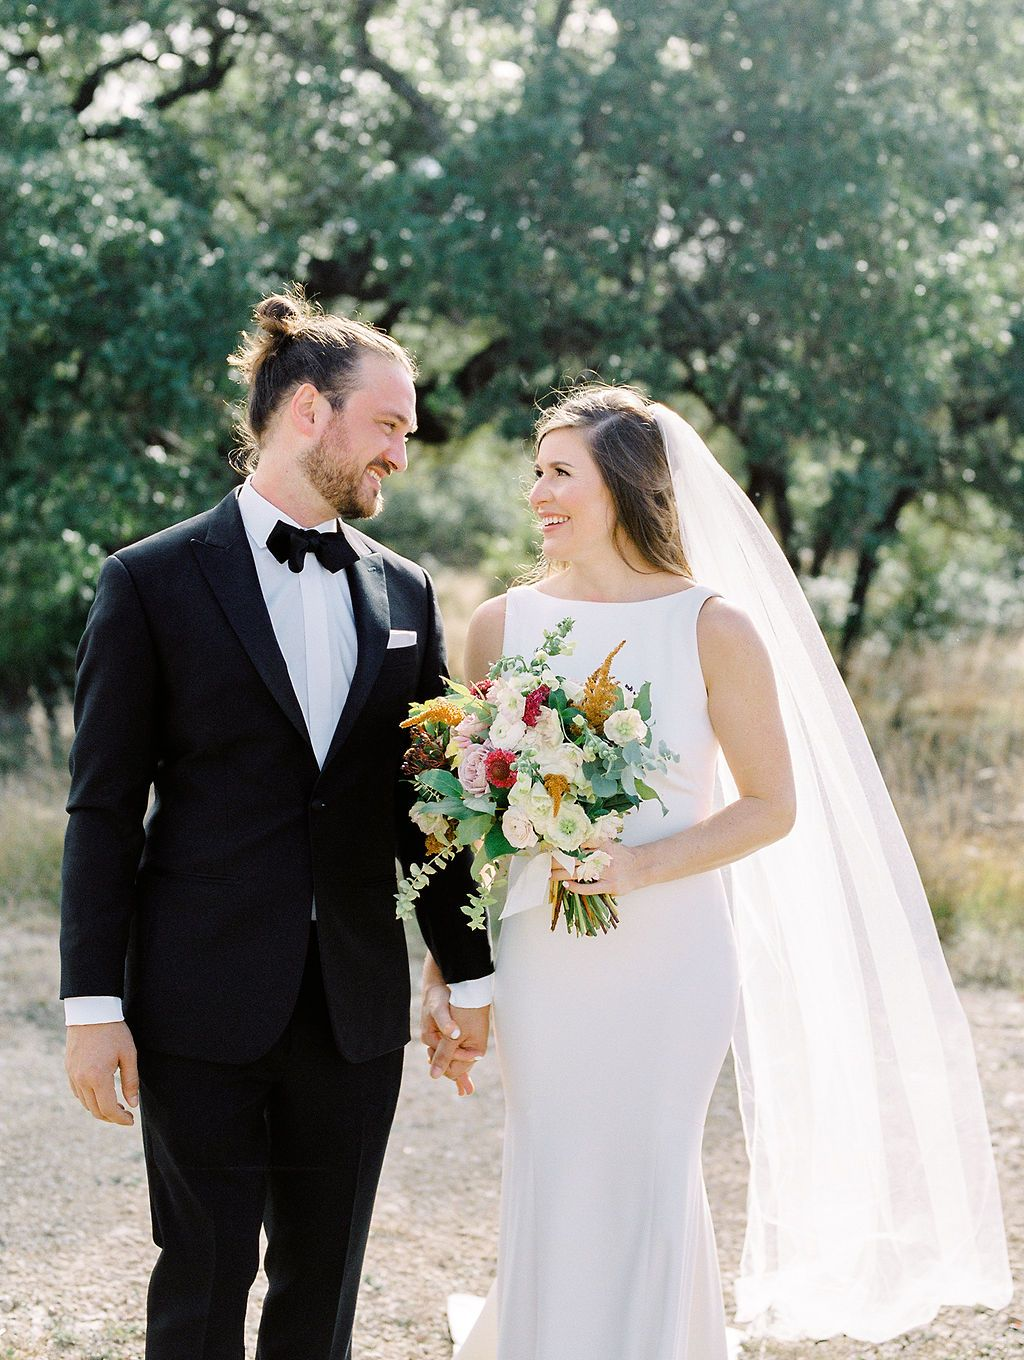 Austin Wedding And Elopement Photographer Film Wedding Photography Texas Wedding Photographer Austin Wedding Photographer